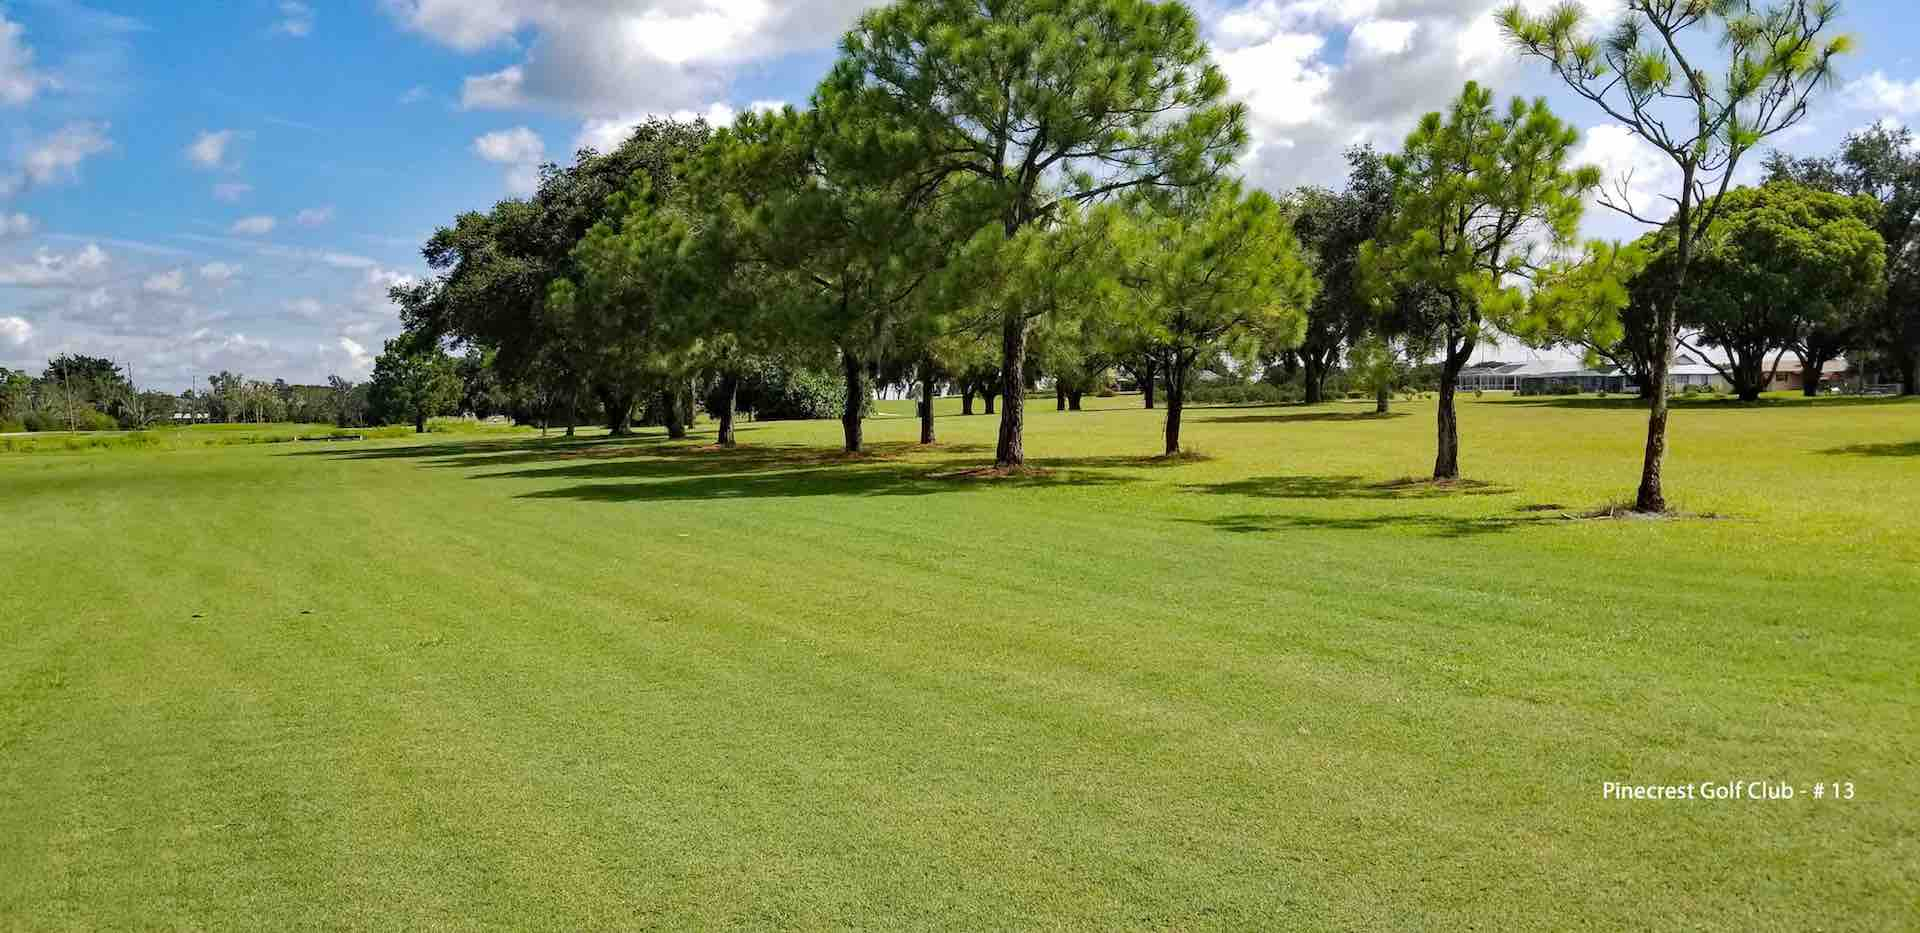 Pinecrest Golf Club – A Little Slice of Donald Ross in Central Florida